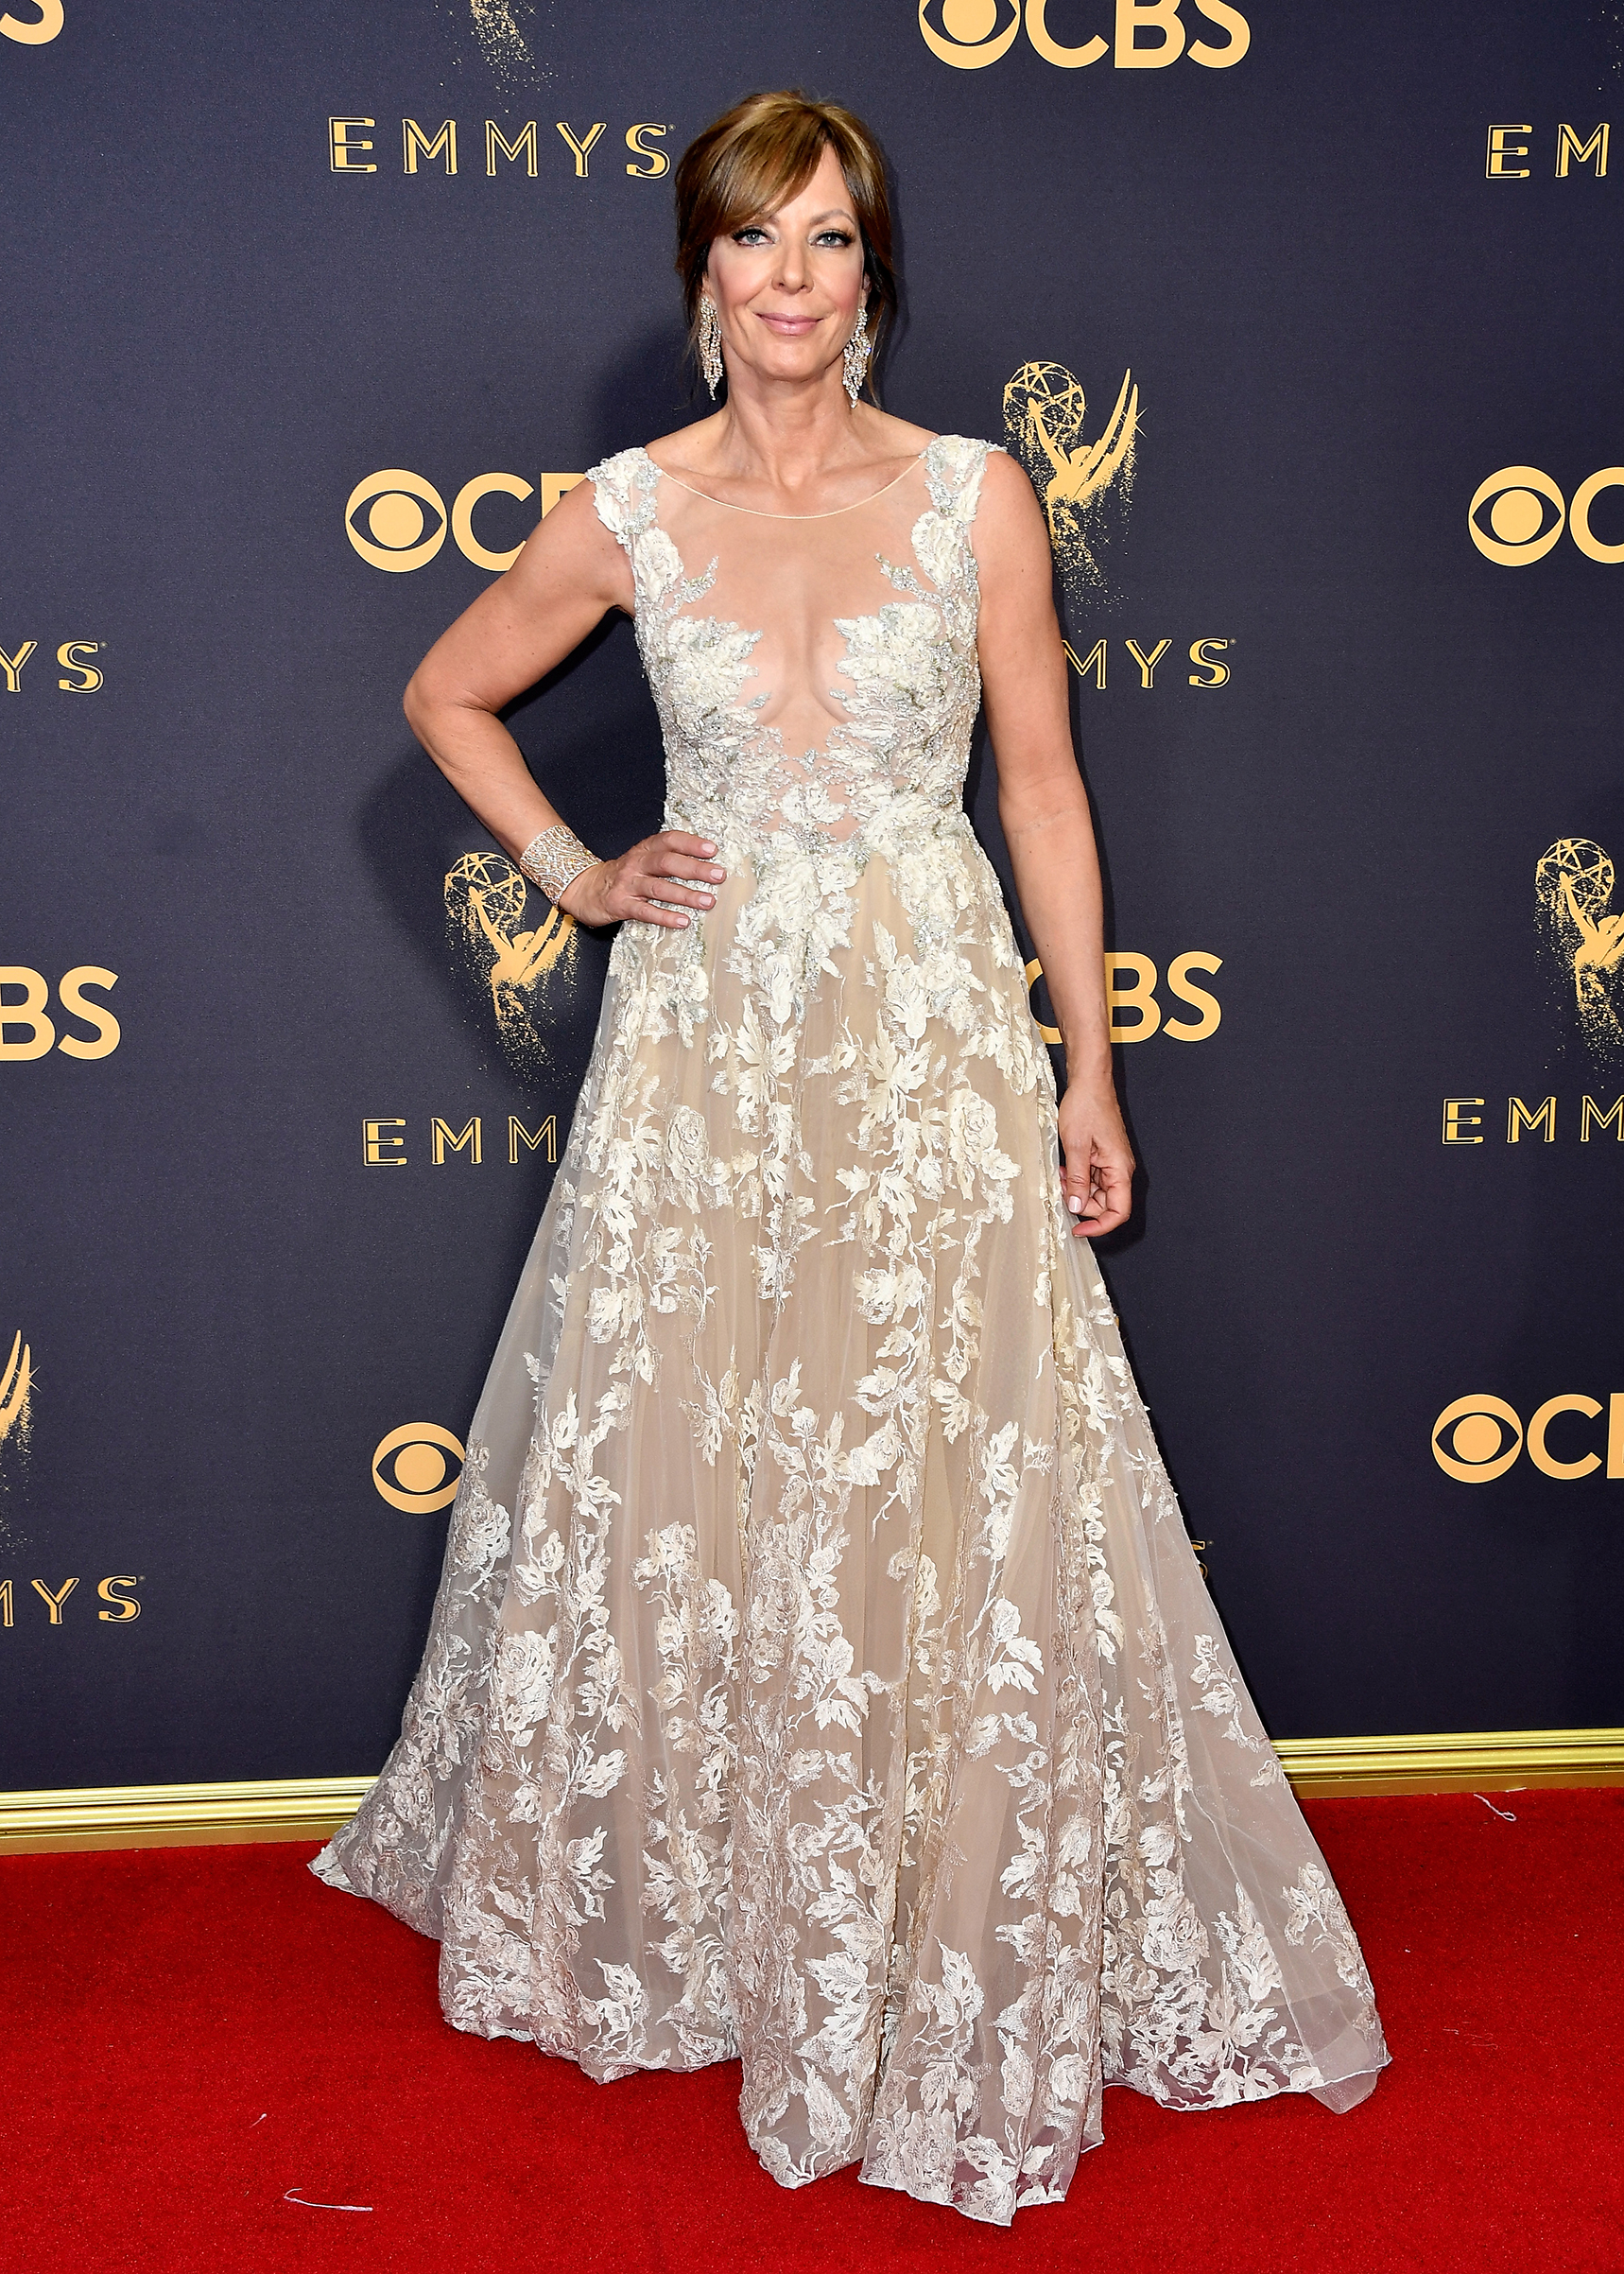 Actor Allison Janney attends the 69th Annual Primetime Emmy Awards at Microsoft Theater on September 17, 2017 in Los Angeles, California.